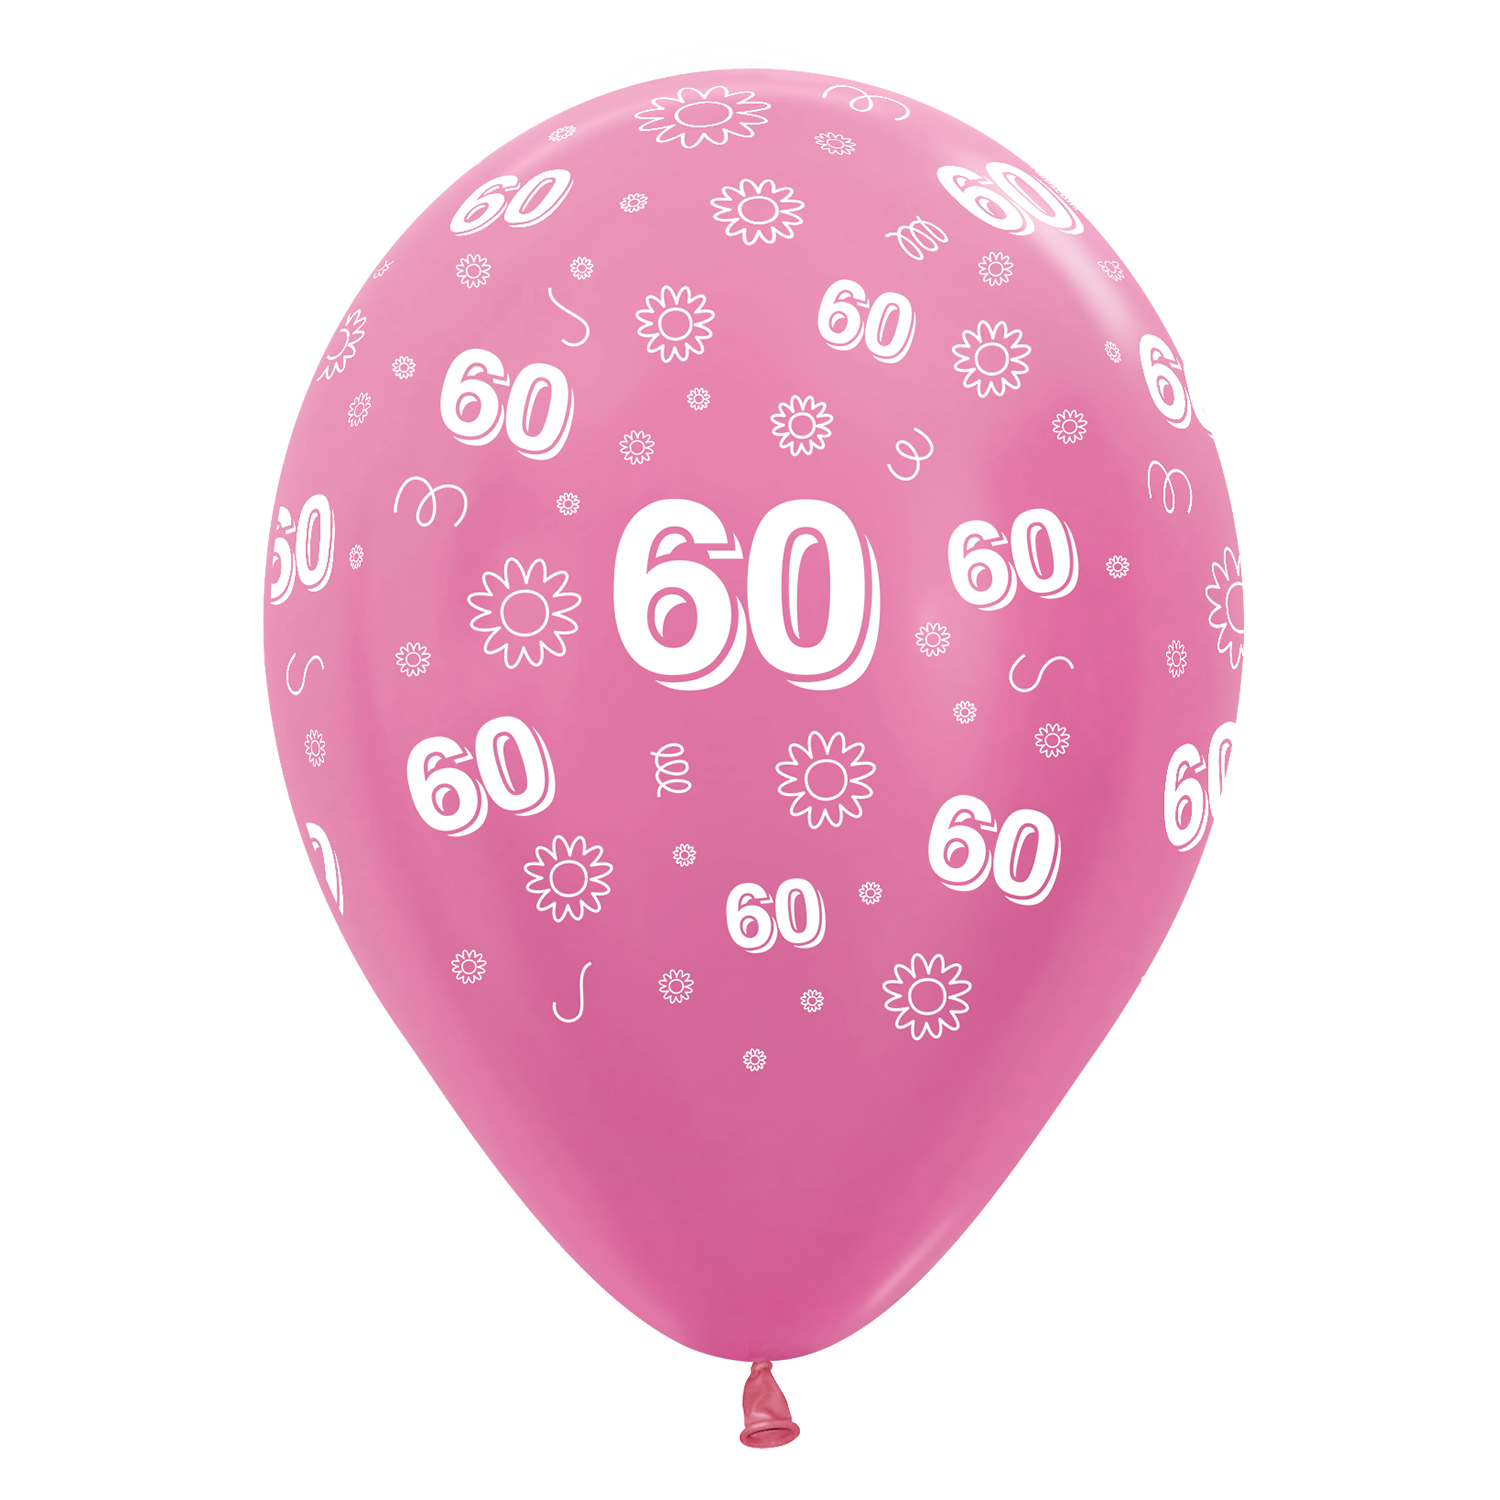 60th Birthday Flowers Pink 412512 Mix Latex Balloons 1230cm 25